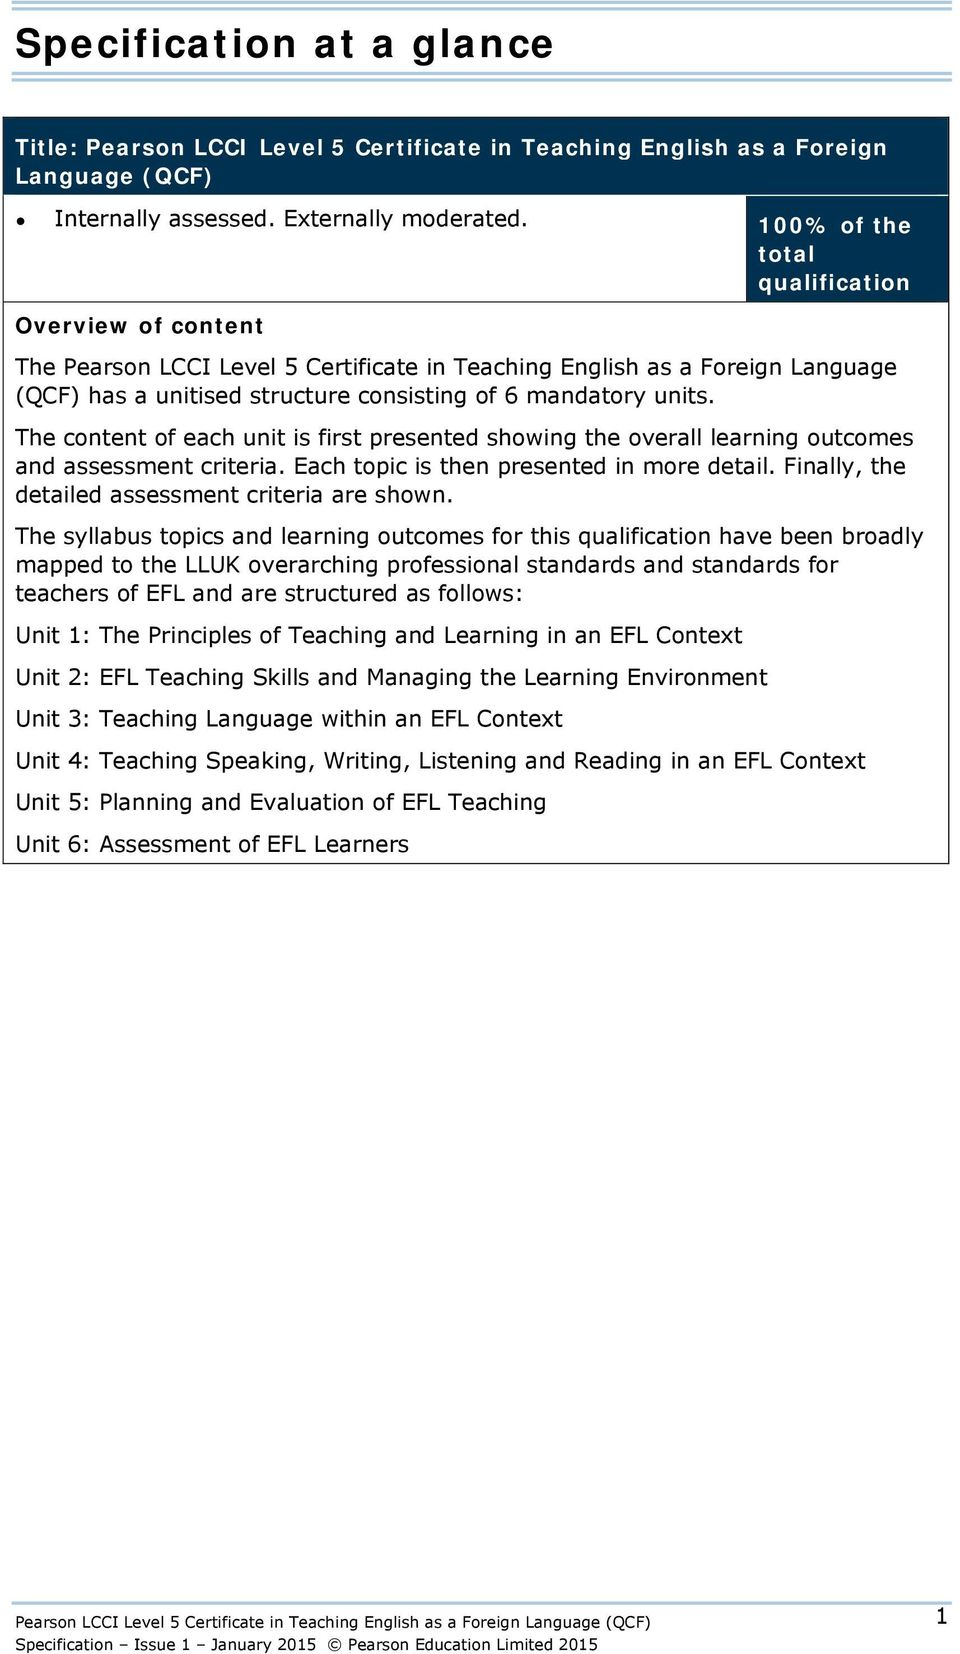 The content of each unit is first presented showing the overall learning  outcomes and assessment criteria